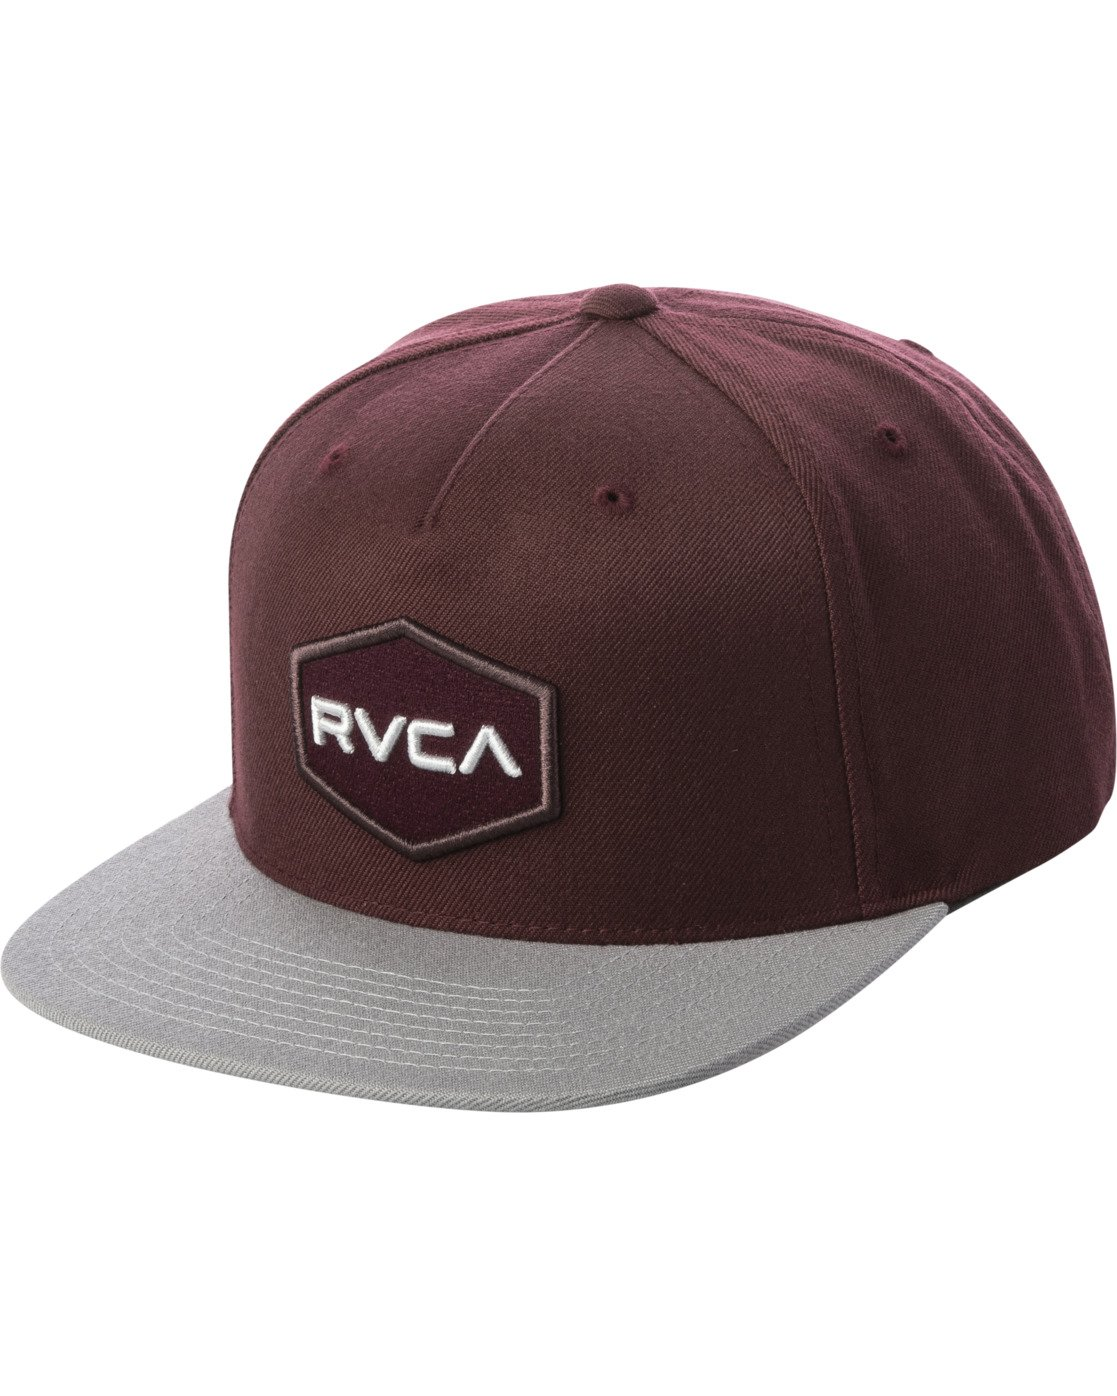 0 COMMONWEALTH SNAPBACK HAT Red MDAHWCWS RVCA